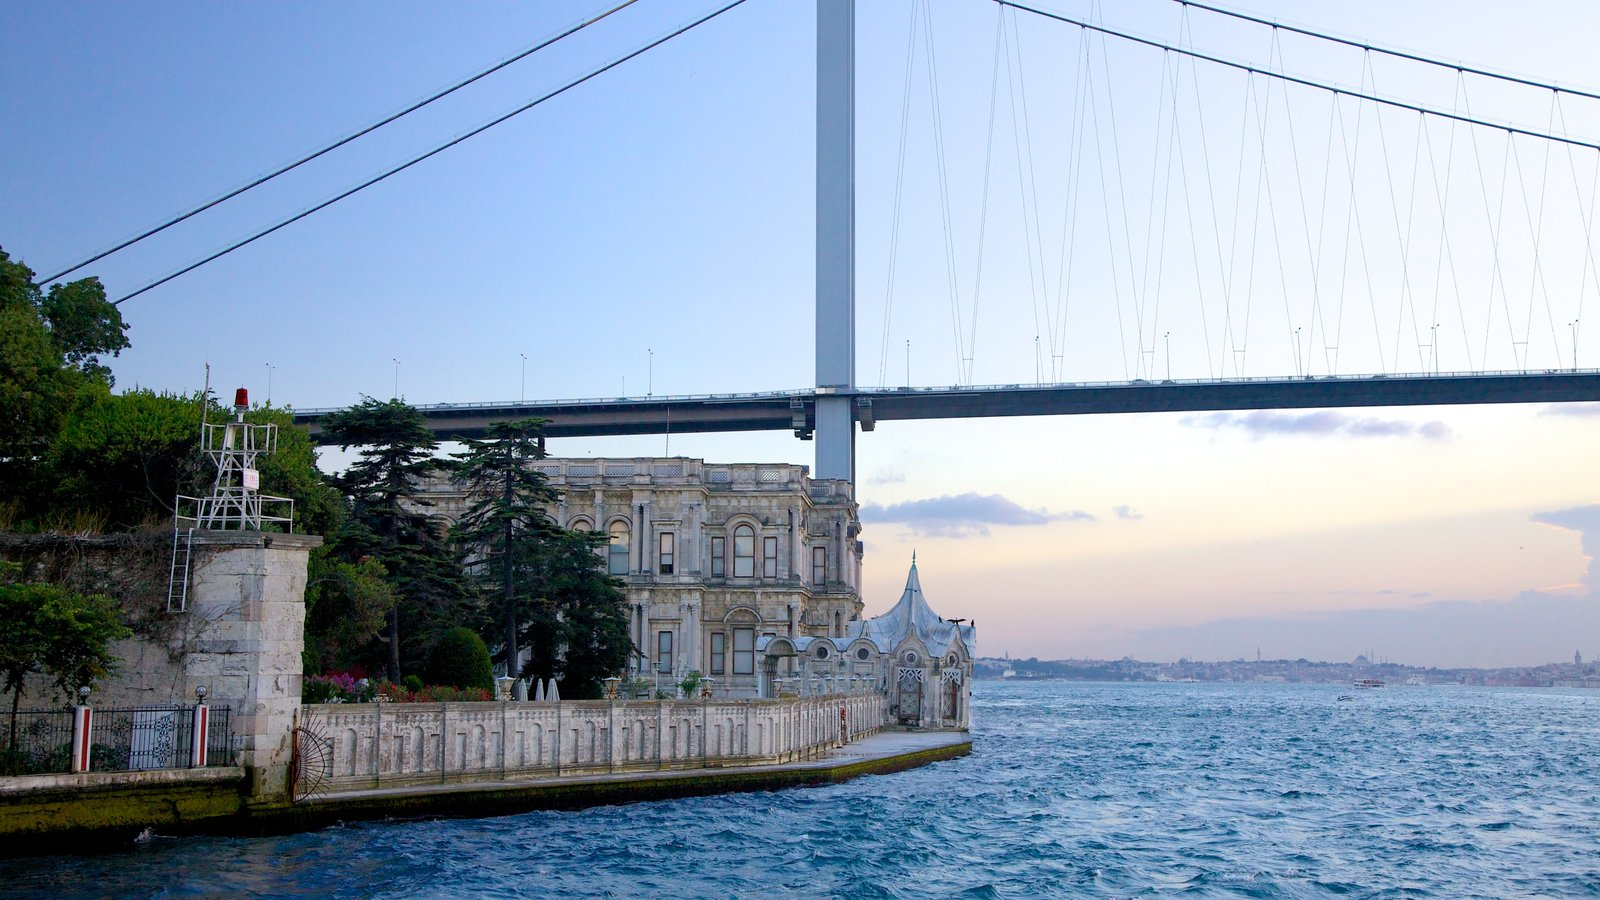 Beylerbeyi Palace which includes a bridge, general coastal views and heritage architecture